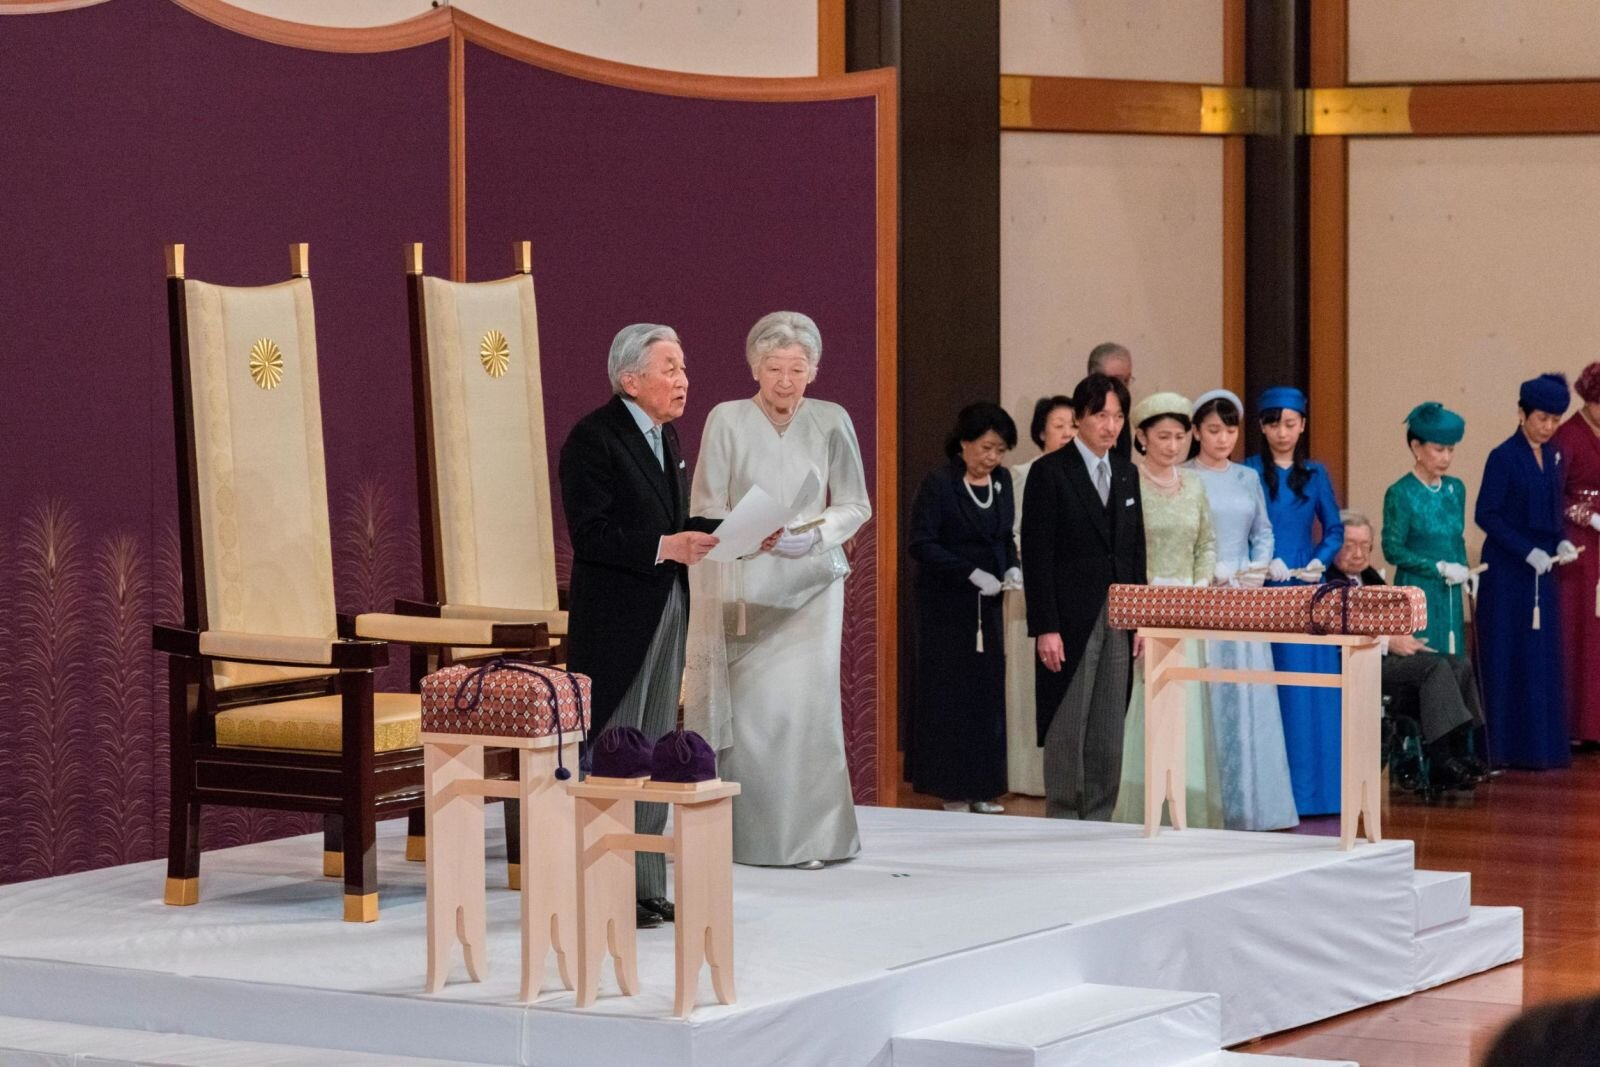 Akihito, joined by Empress Michiko and members of the royal family, speaks during his abdication ceremony on April 30.